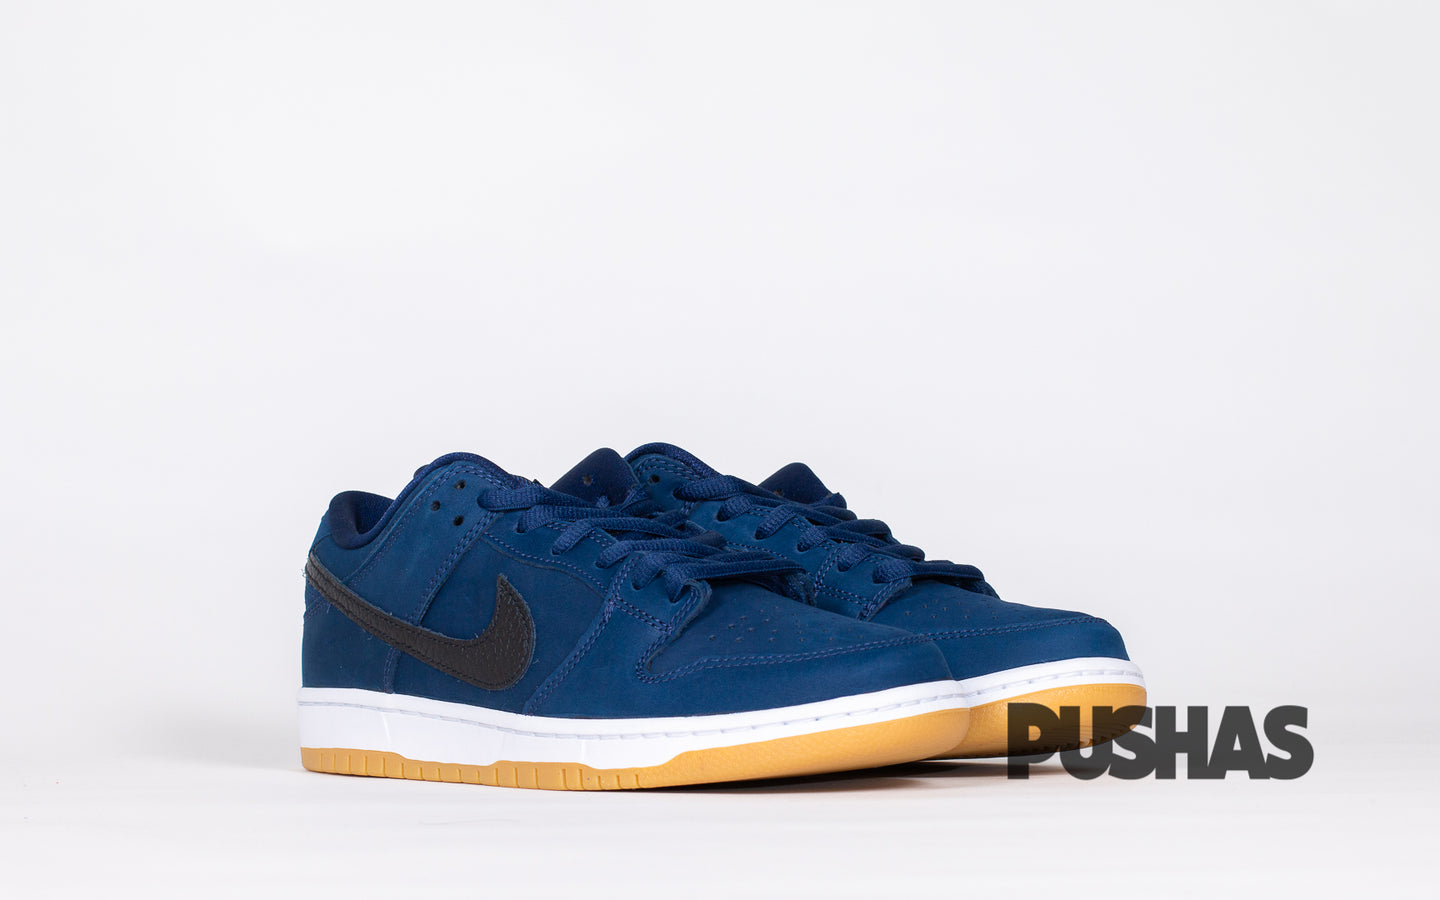 pushas-nike-Dunk-Low-Pro-ISO-SB-Orange-Label-Midnight-Navy